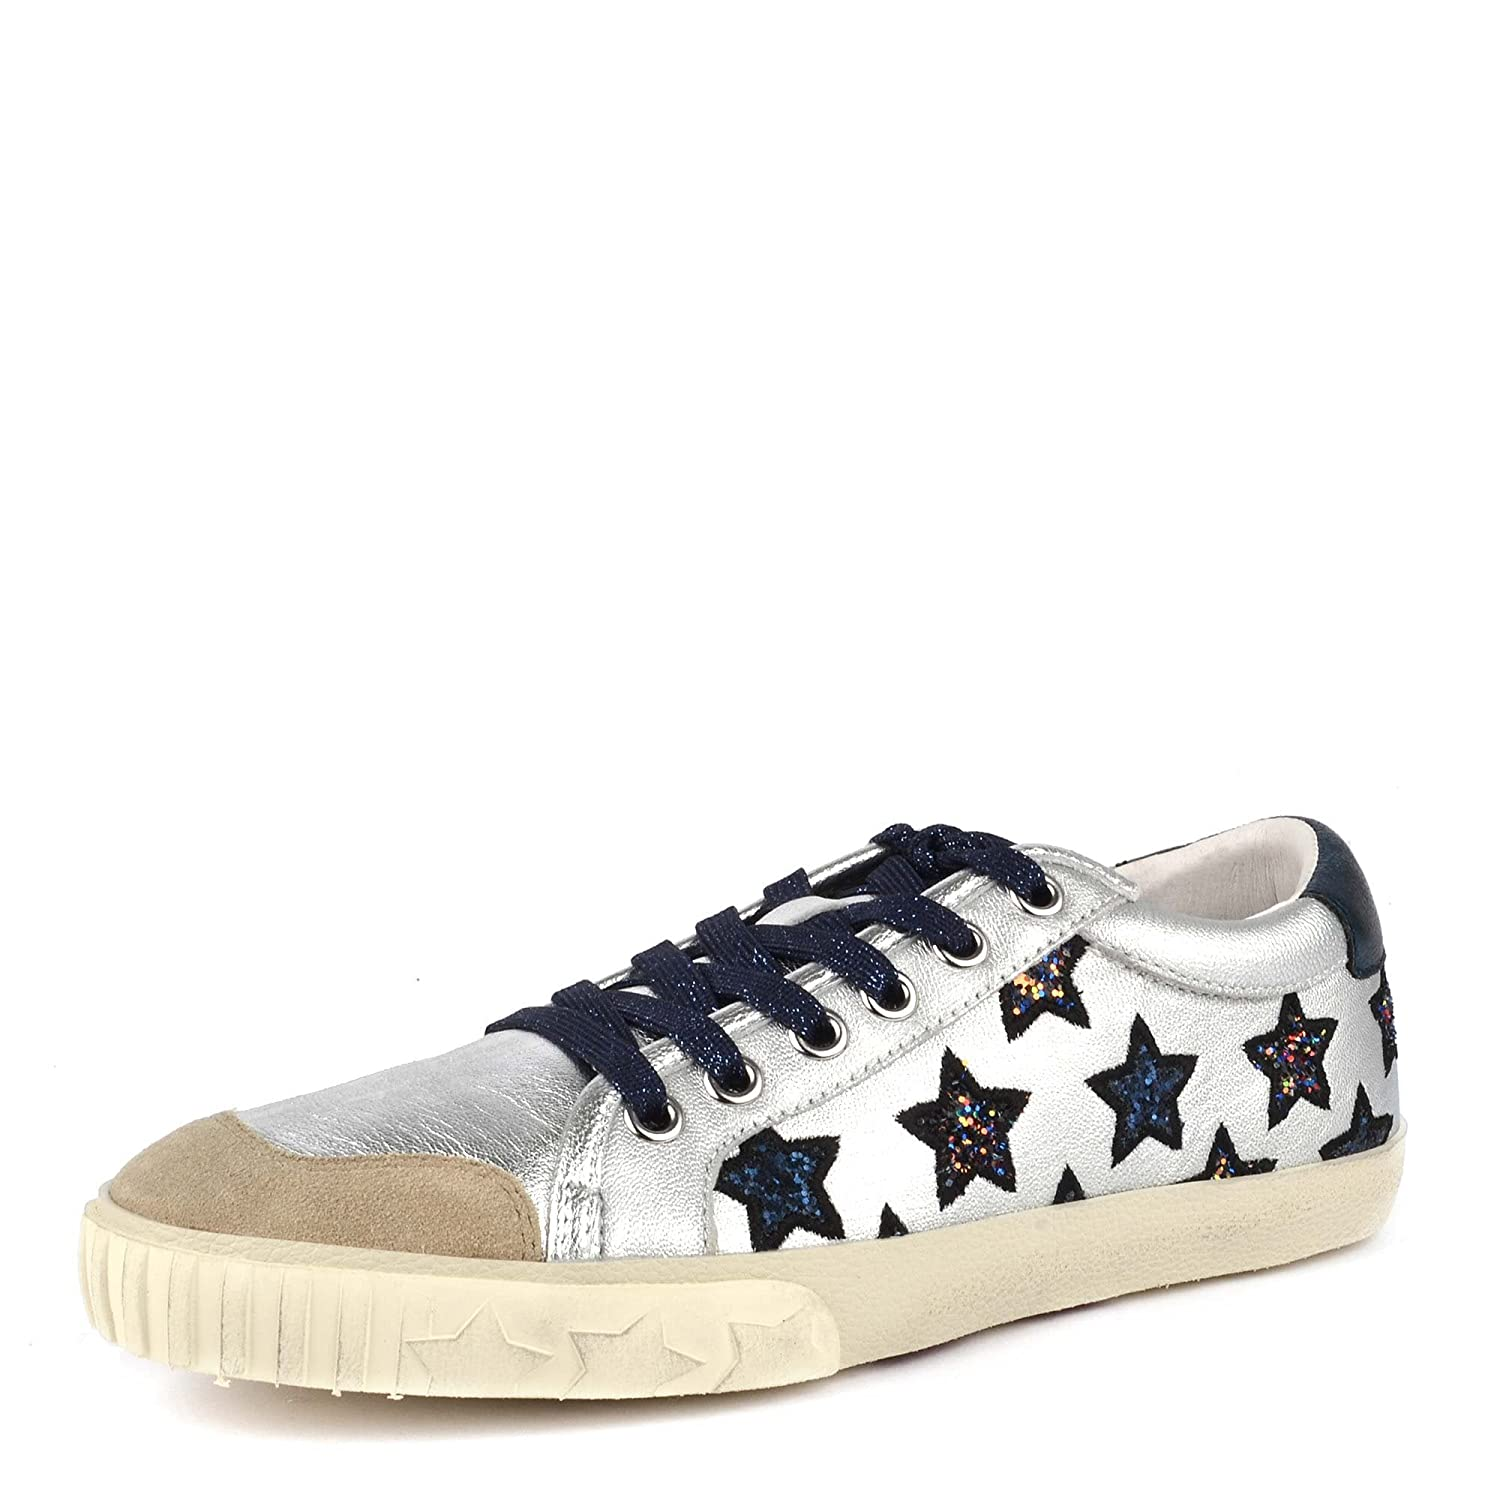 1a41ce3df4659 Ash Majestic Star Motif Trainers Silver Leather & Midnight Glitter